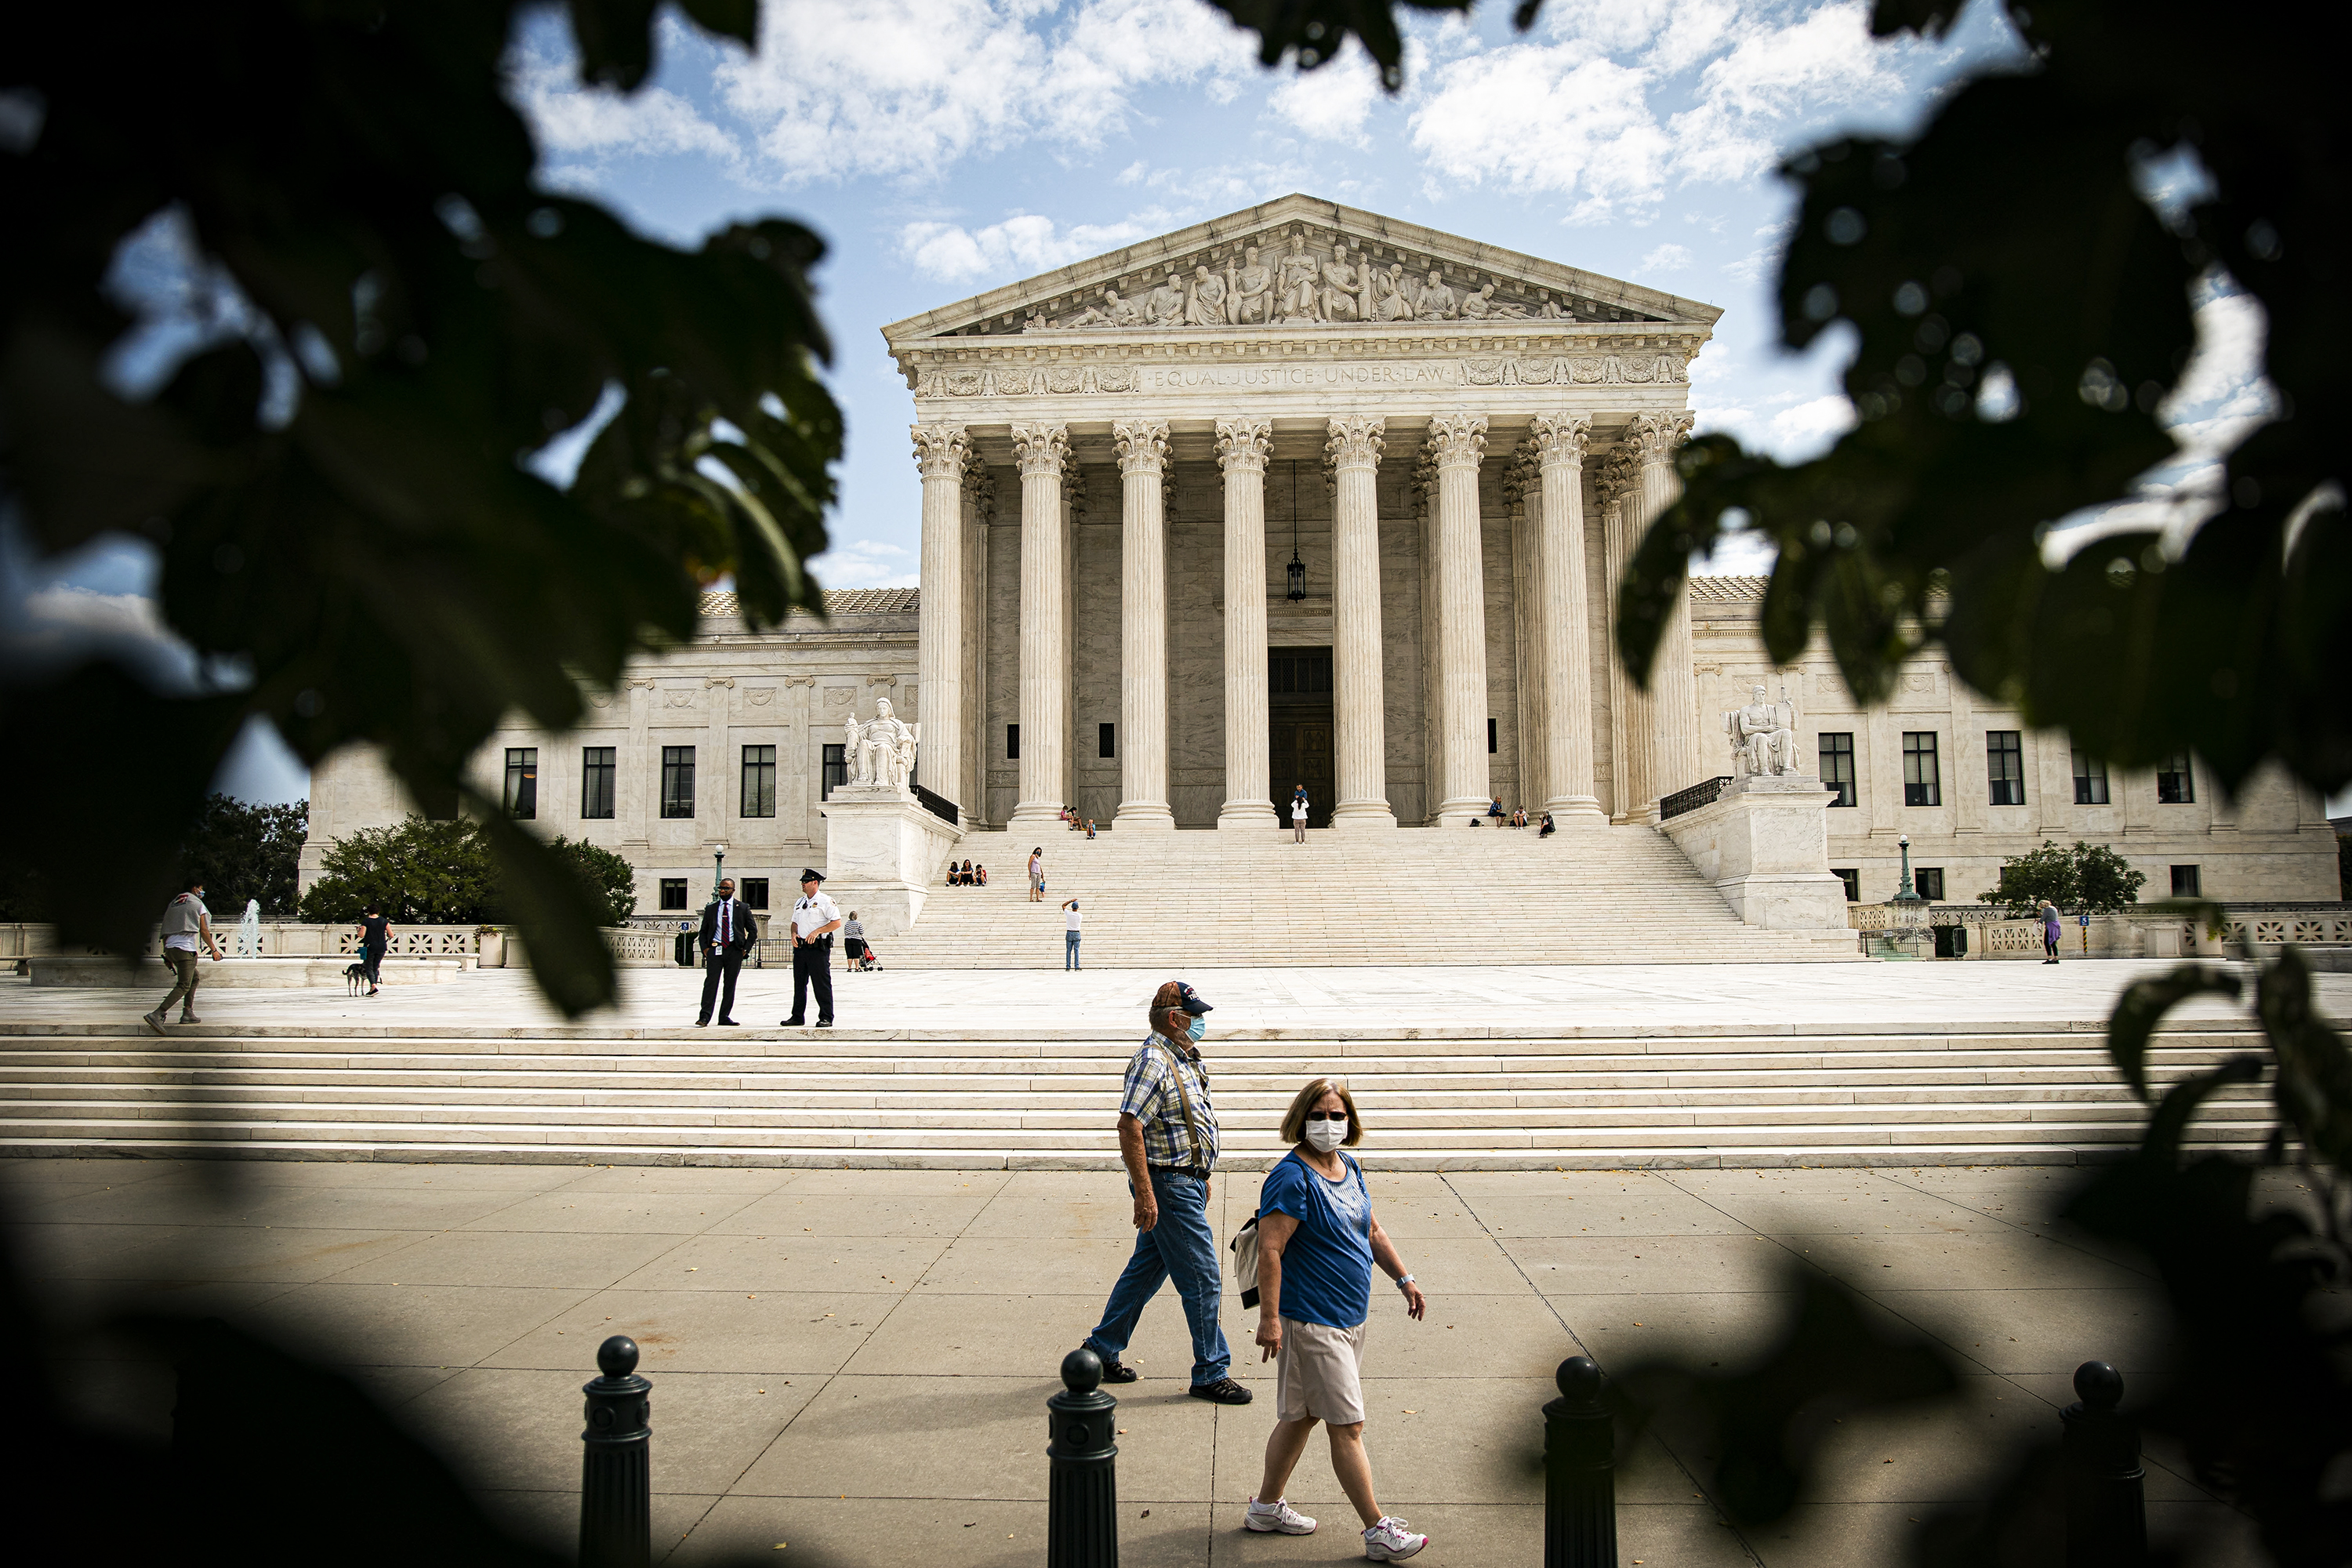 People walk past the US Supreme Court building in Washington, DC